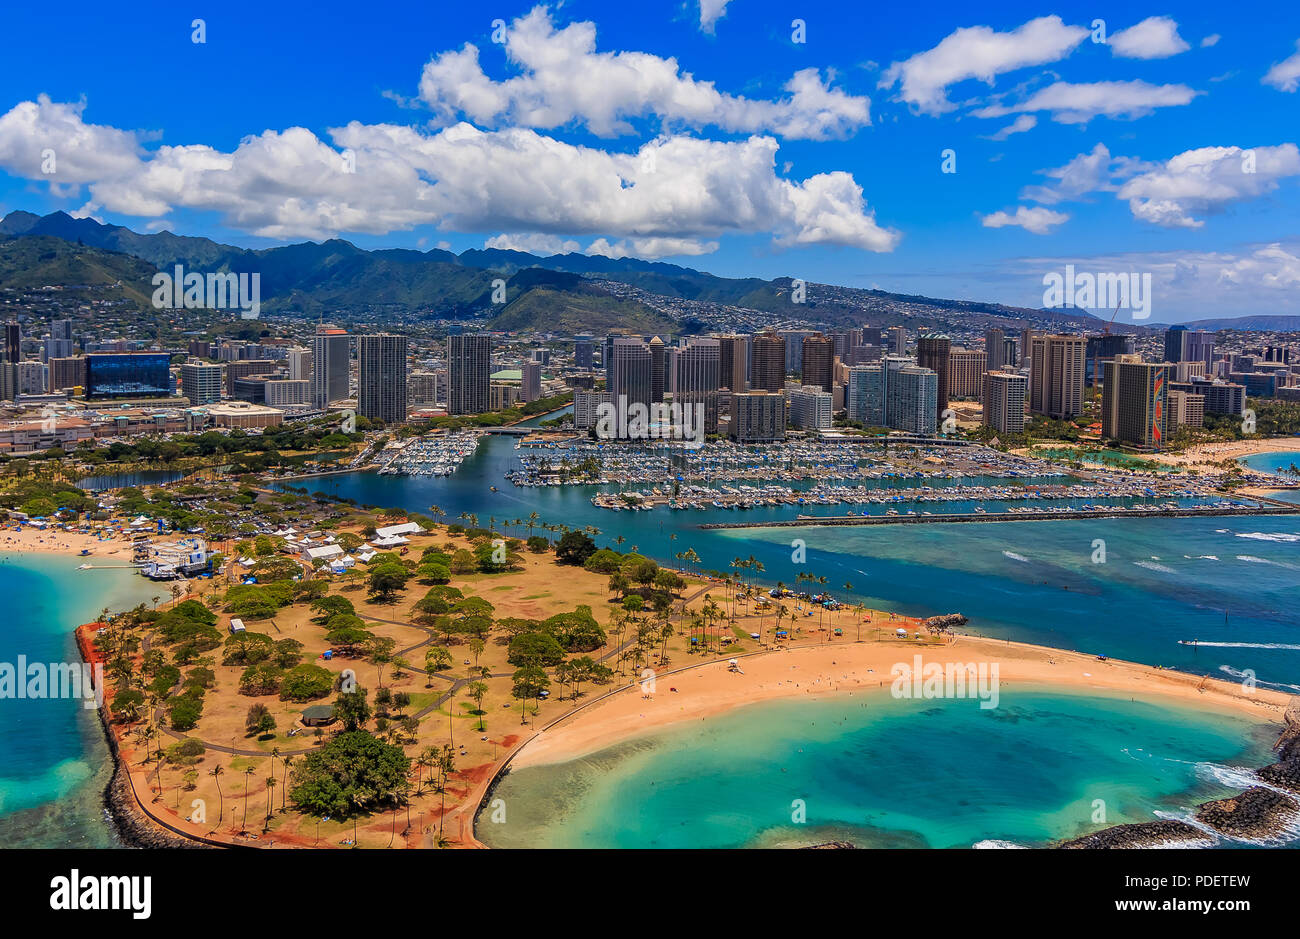 Aerial view of Ala Moana Beach Park in Honolulu Hawaii from a helicopter - Stock Image